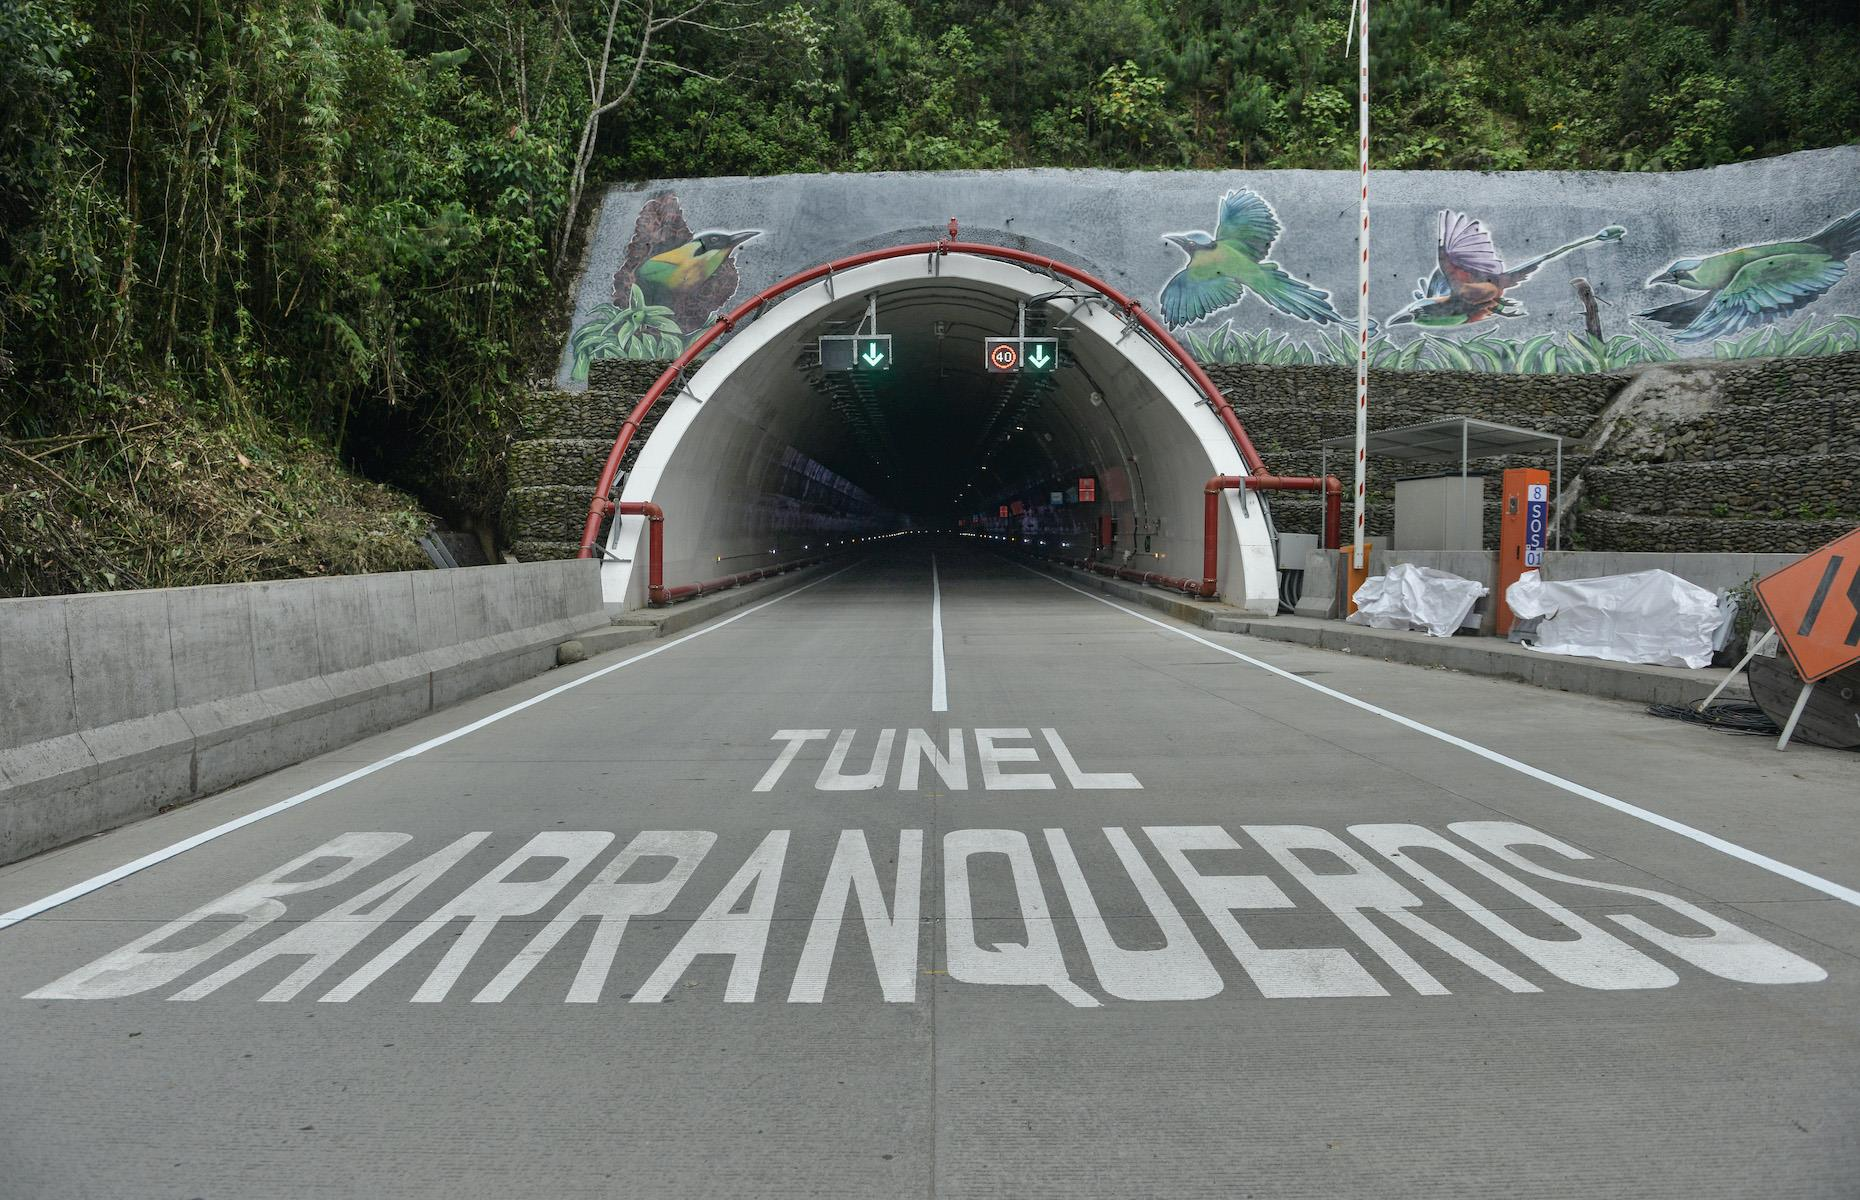 Slide 26 of 31: The brand spanking new La Línea, which crosses beneath the central range of Colombia's Andes, opened this September after 14 years in the making. At just over five miles long (8.65km), it is now the longest road tunnel in South America. The tunnel was built to reduce the time and cost of moving goods from the Pacific port city of Buenaventura to the center of the country.